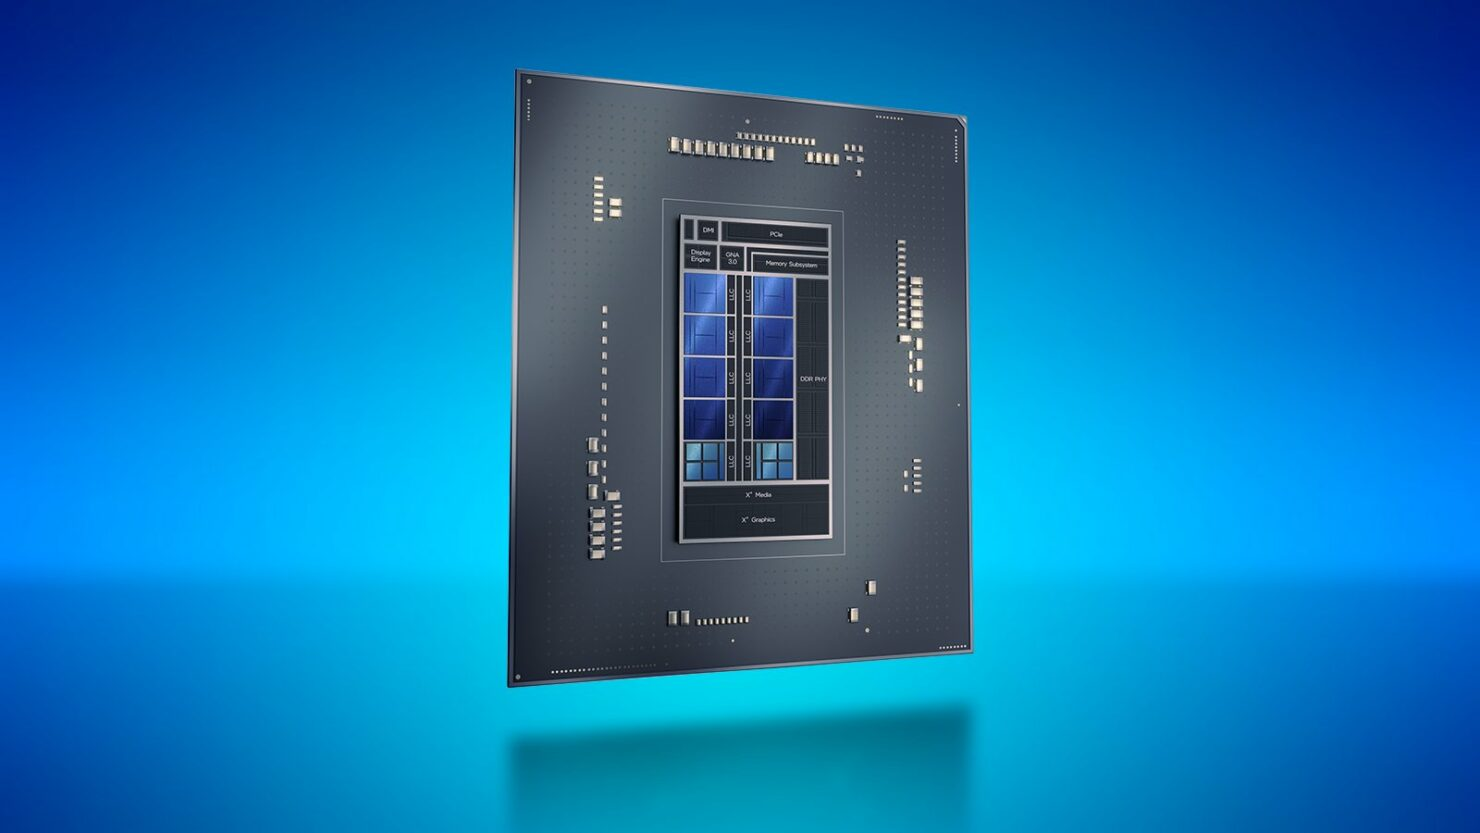 Intel Core i7-12700 Alder Lake CPU Up To 15% Faster Than Ryzen 7 5800X In Latest Multi-Threaded Benchmarks